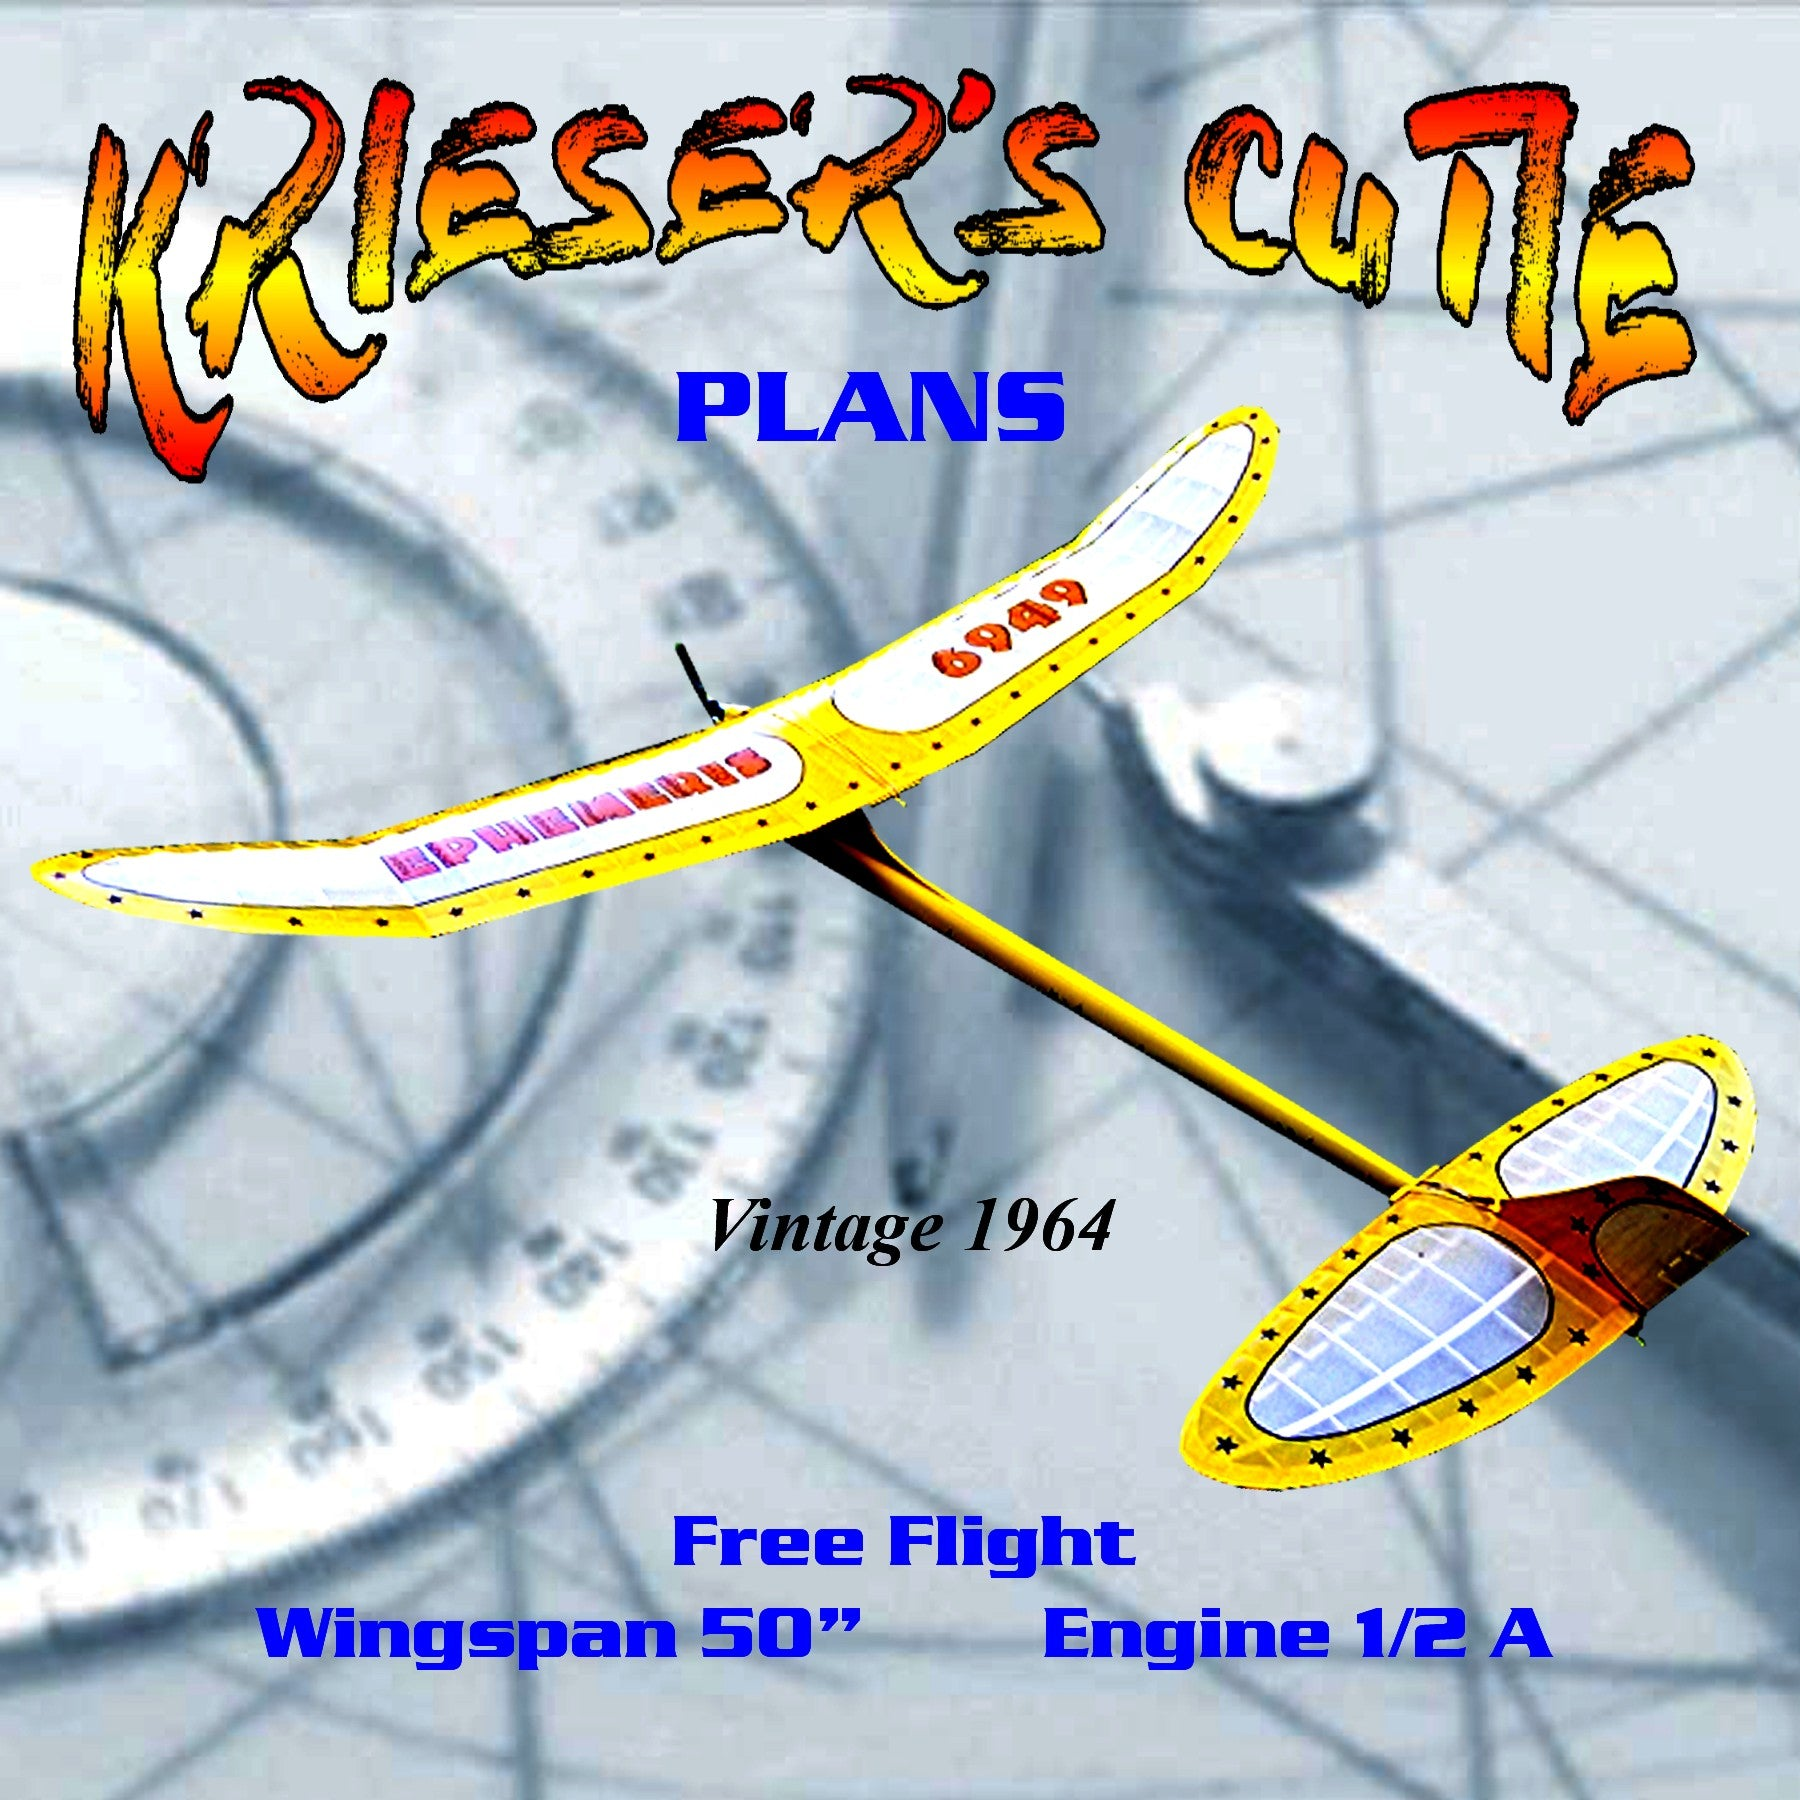 full size printed plan vintage 1964 ½ A Free flight KRIESER'S CUTIE Excellent glide